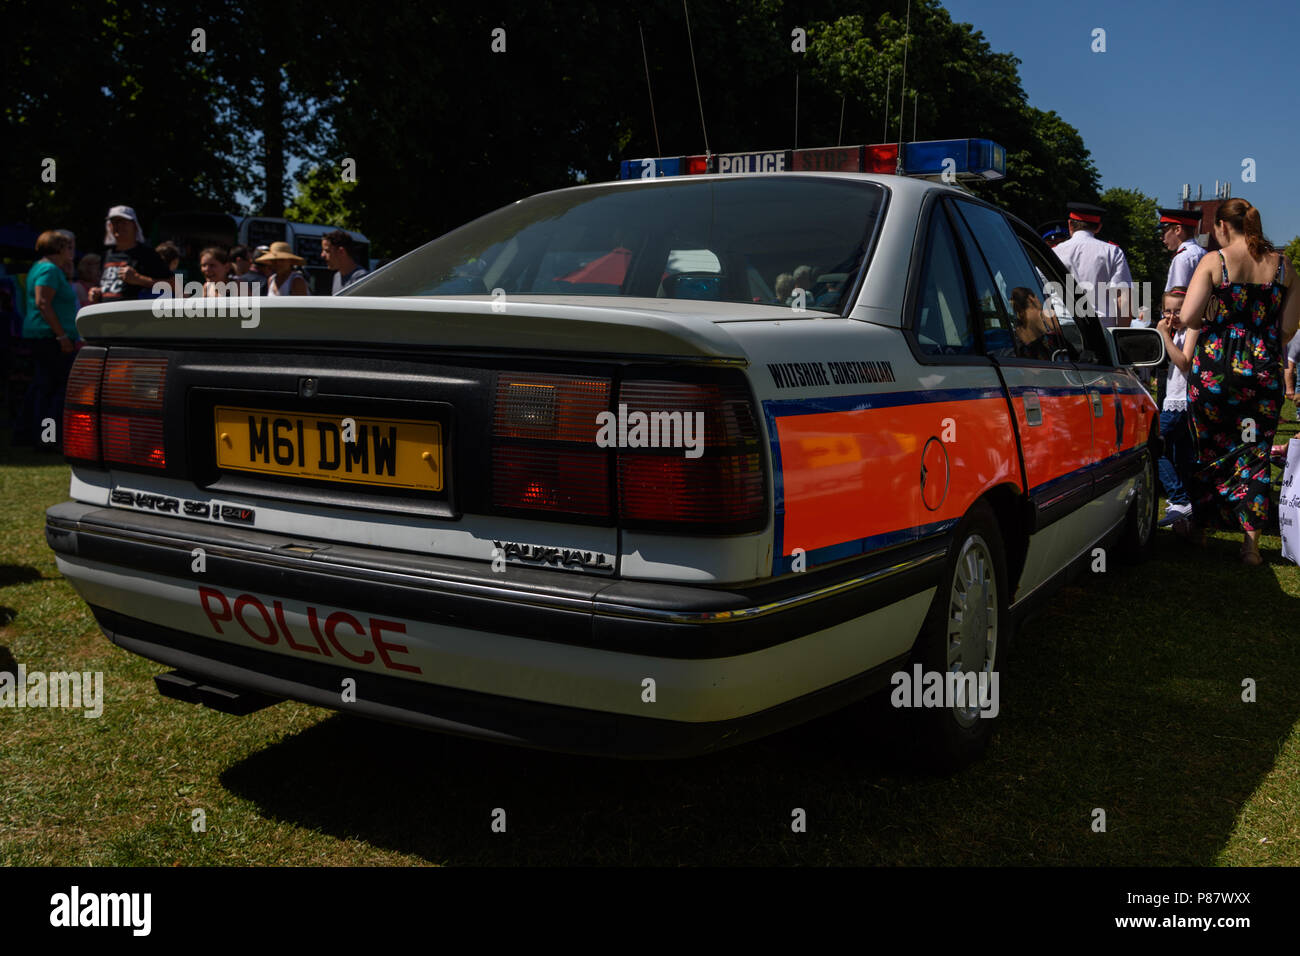 Classic police 3 liter vauxhall senator car on display for public in Trowbridge park at the armed forces celebration weekend Stock Photo